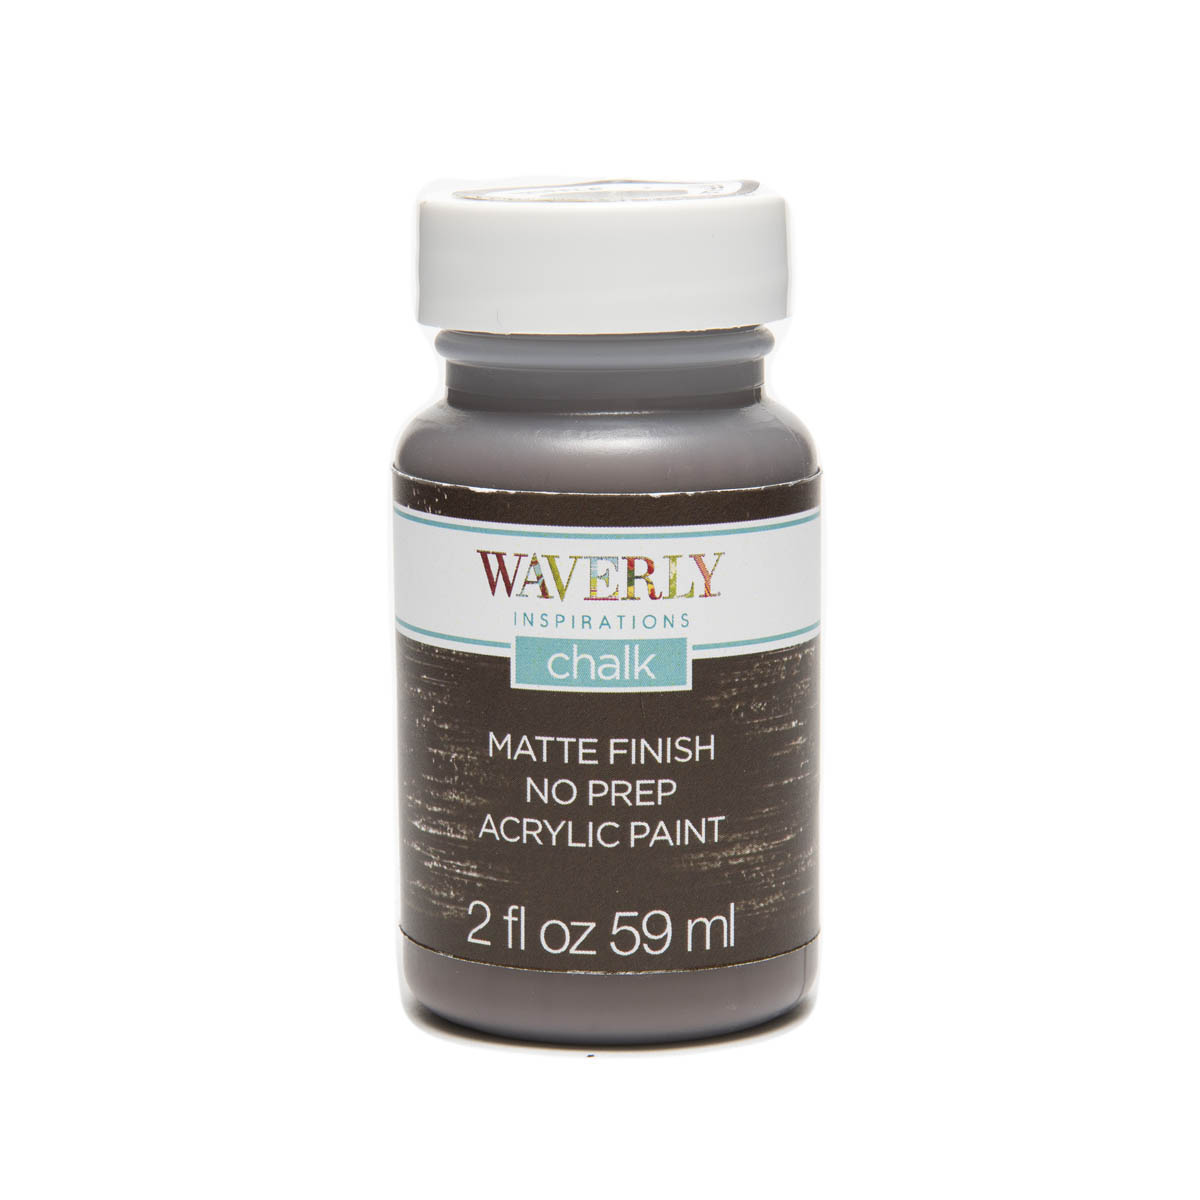 Waverly ® Inspirations Chalk Finish Acrylic Paint - Truffle, 2 oz. - 60894E